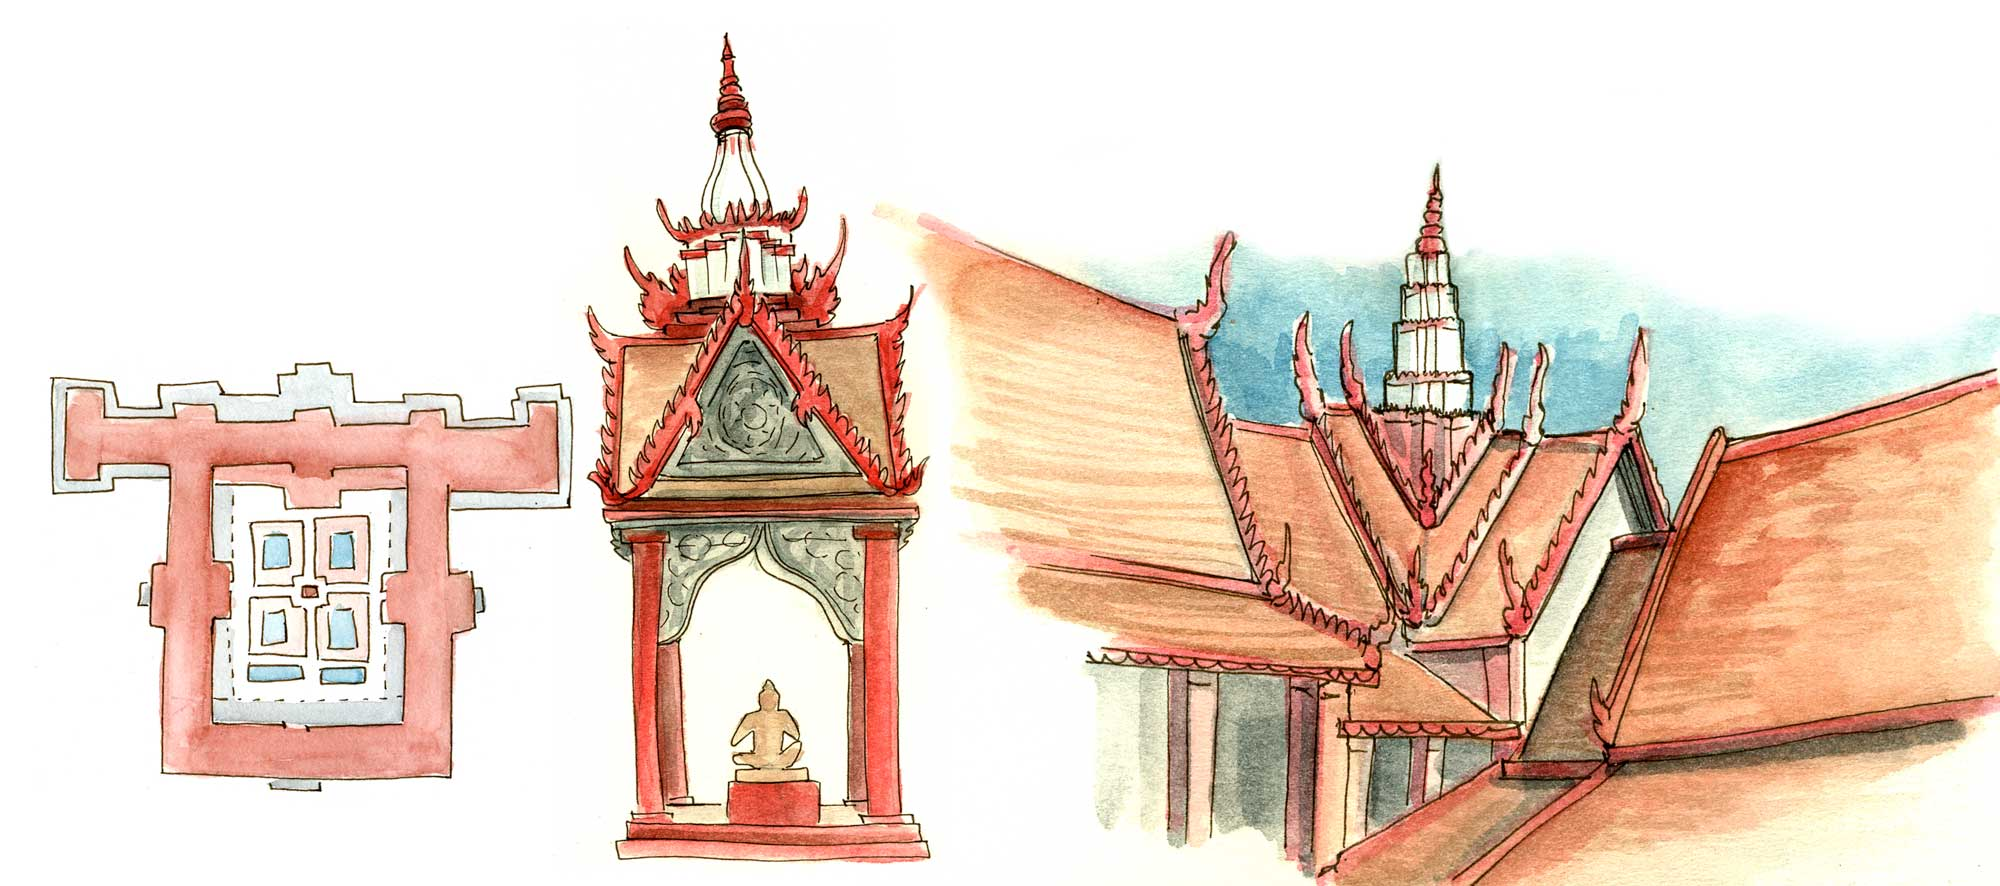 Architecture studies from the National Museum